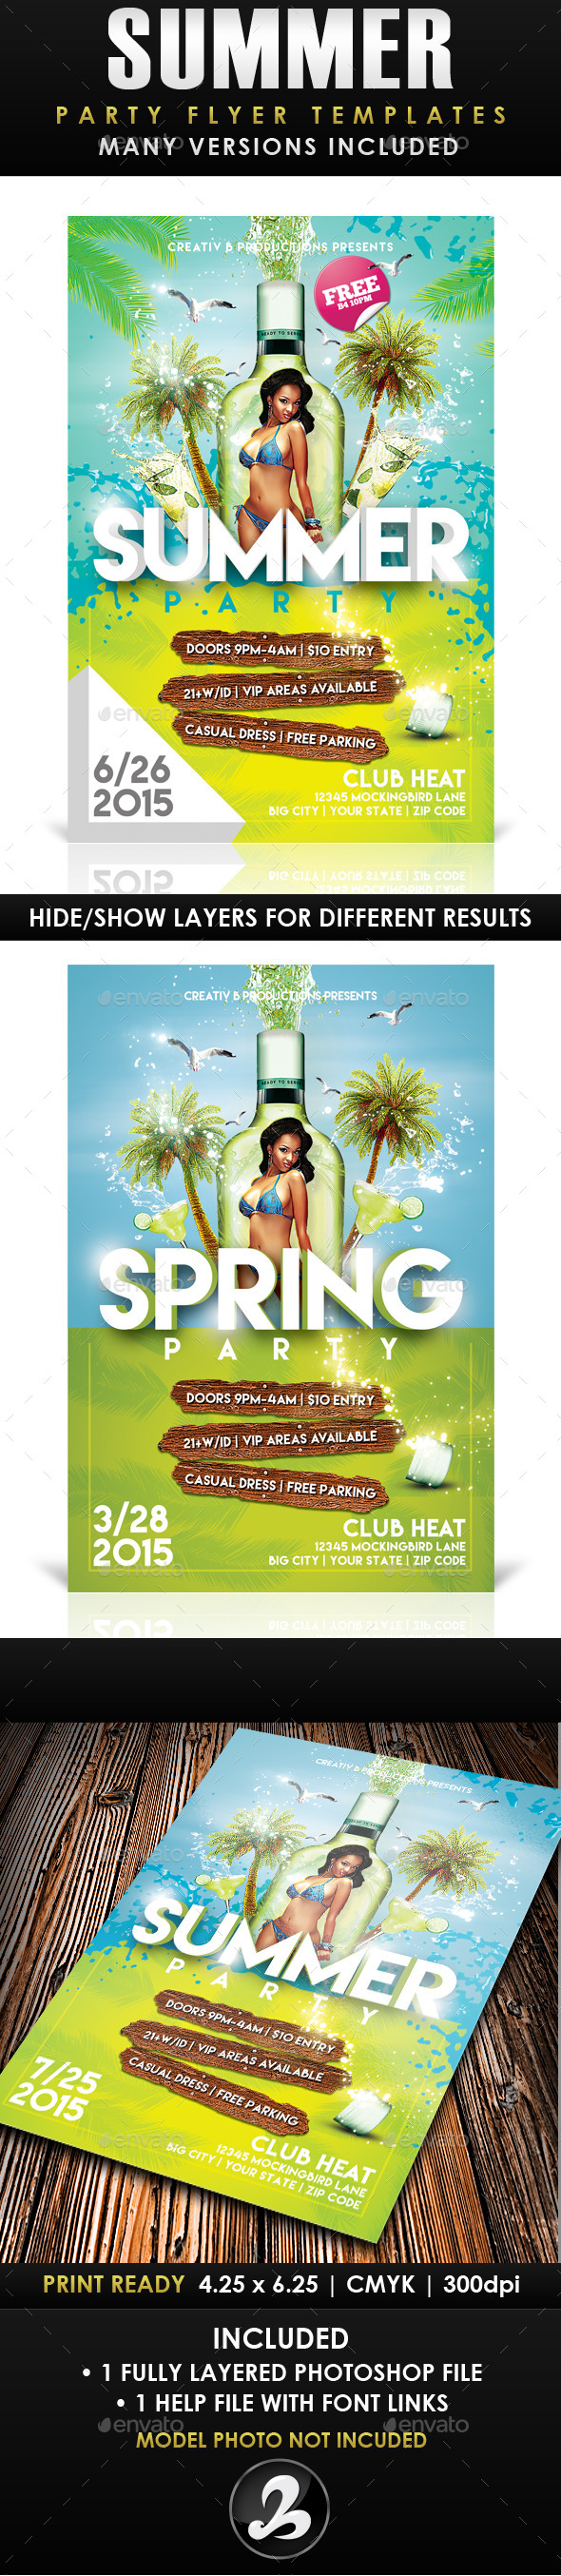 Summer Party Flyer Template 3 - Events Flyers